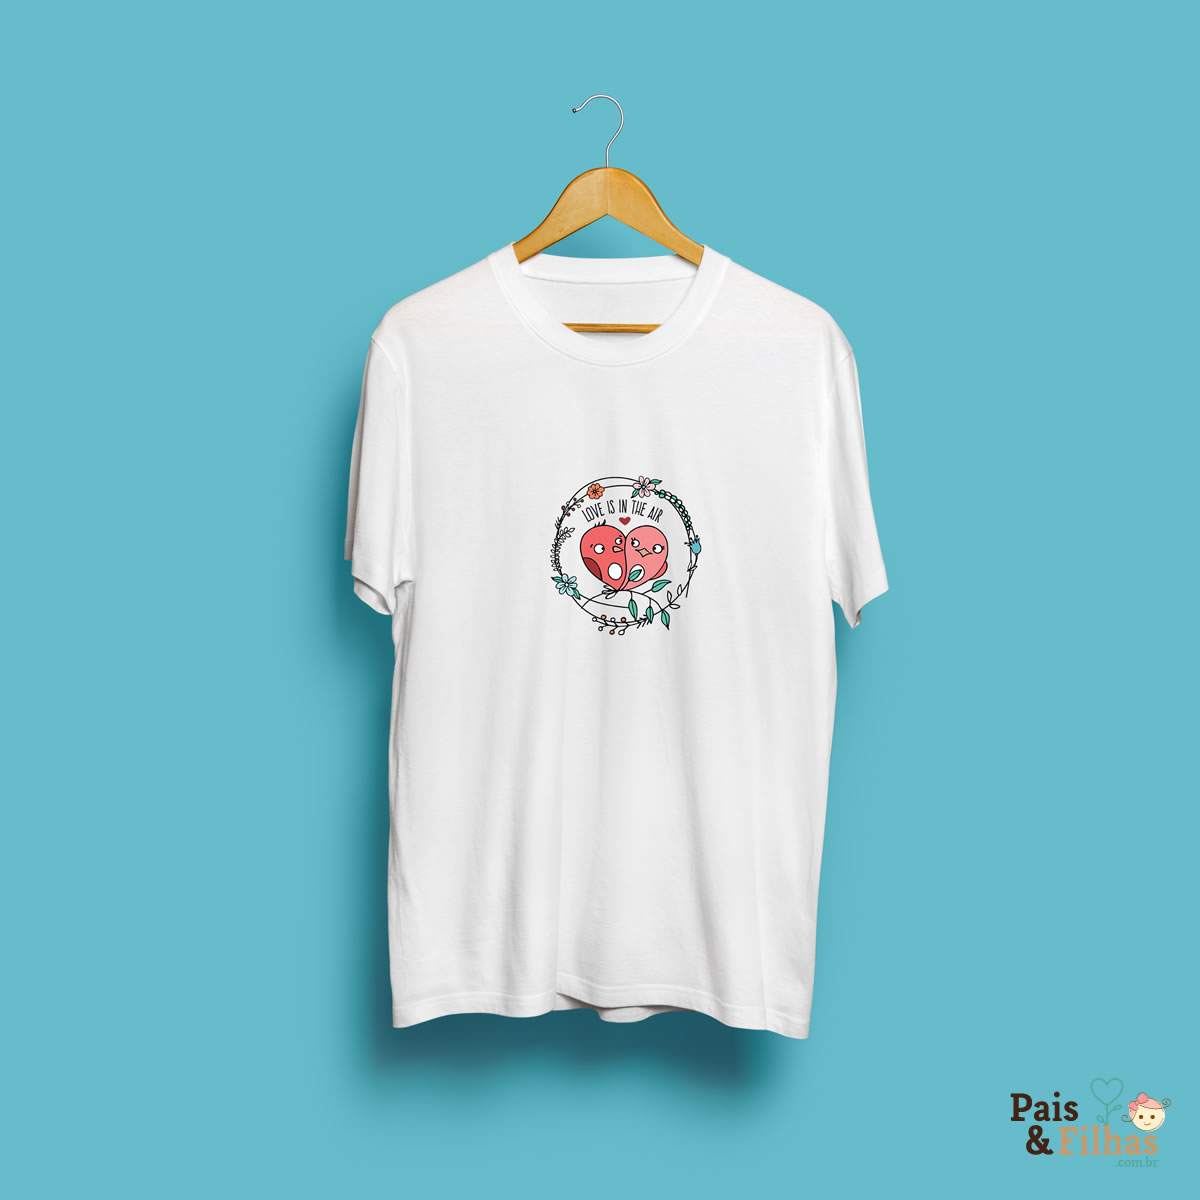 "Camiseta Em Poliéster Com Estampa Personalizada ""Love Is In The Air"""